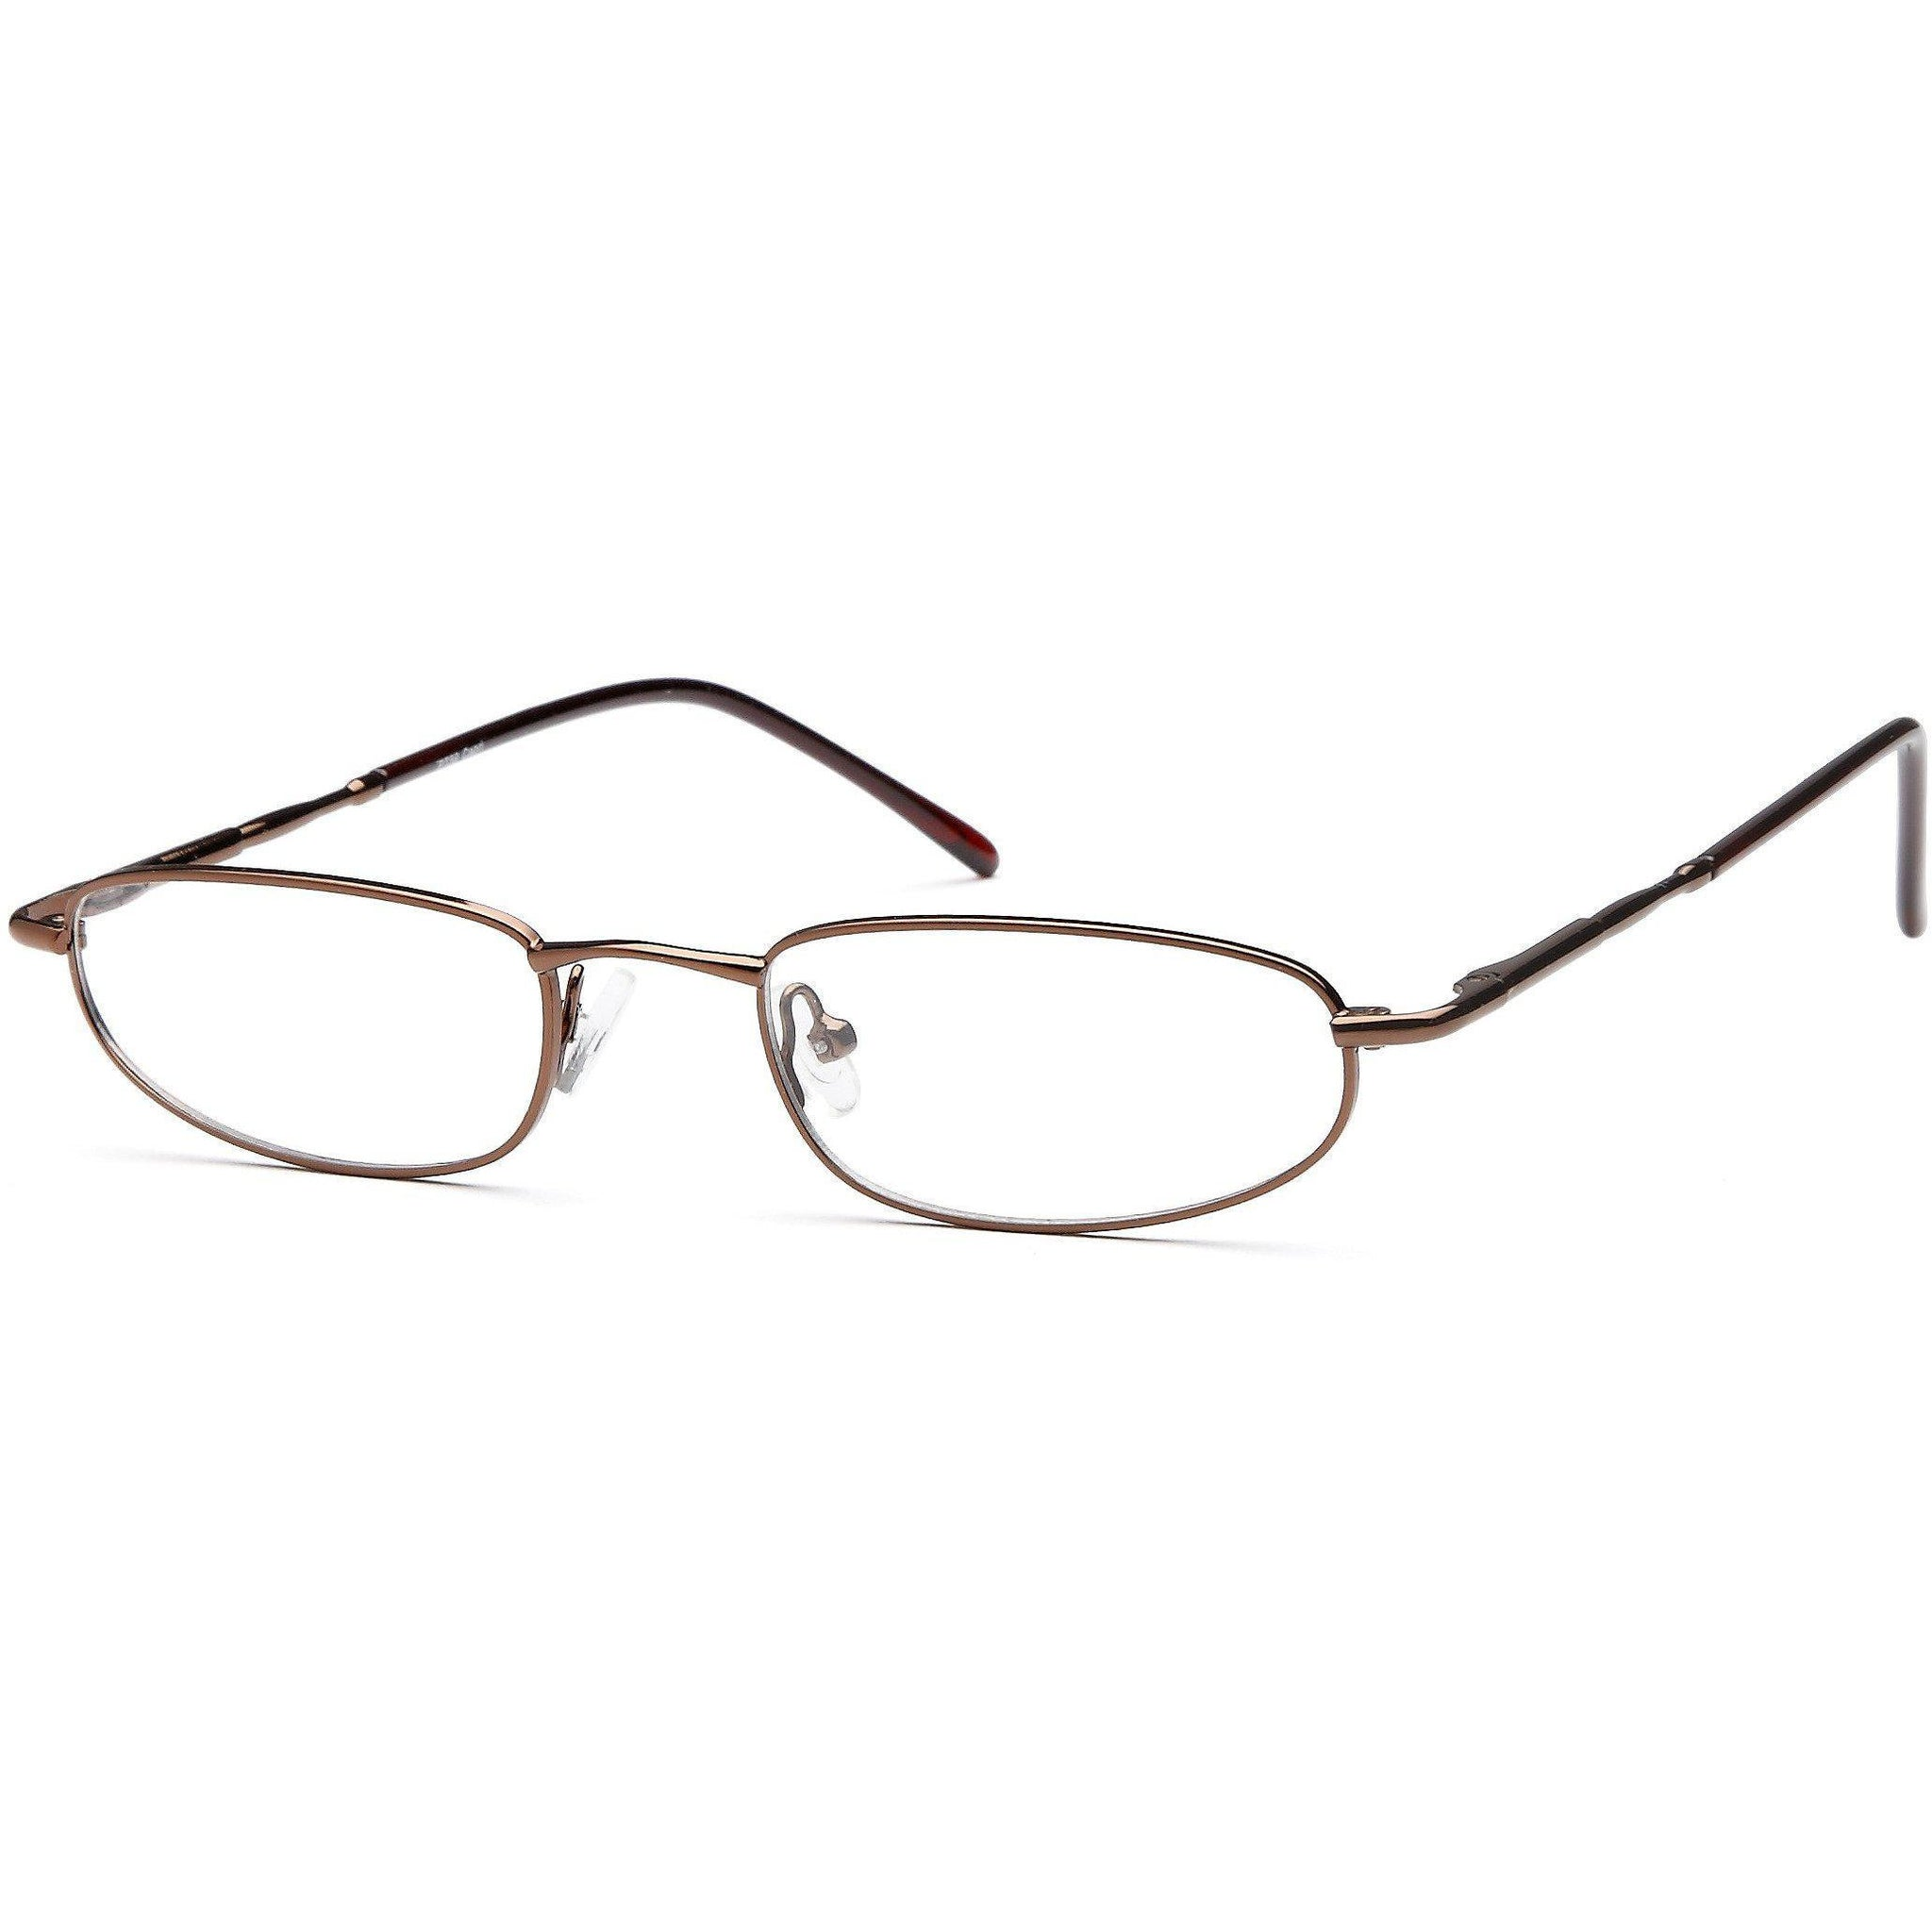 Appletree Prescription Glasses PT 59 Eyeglasses Frame